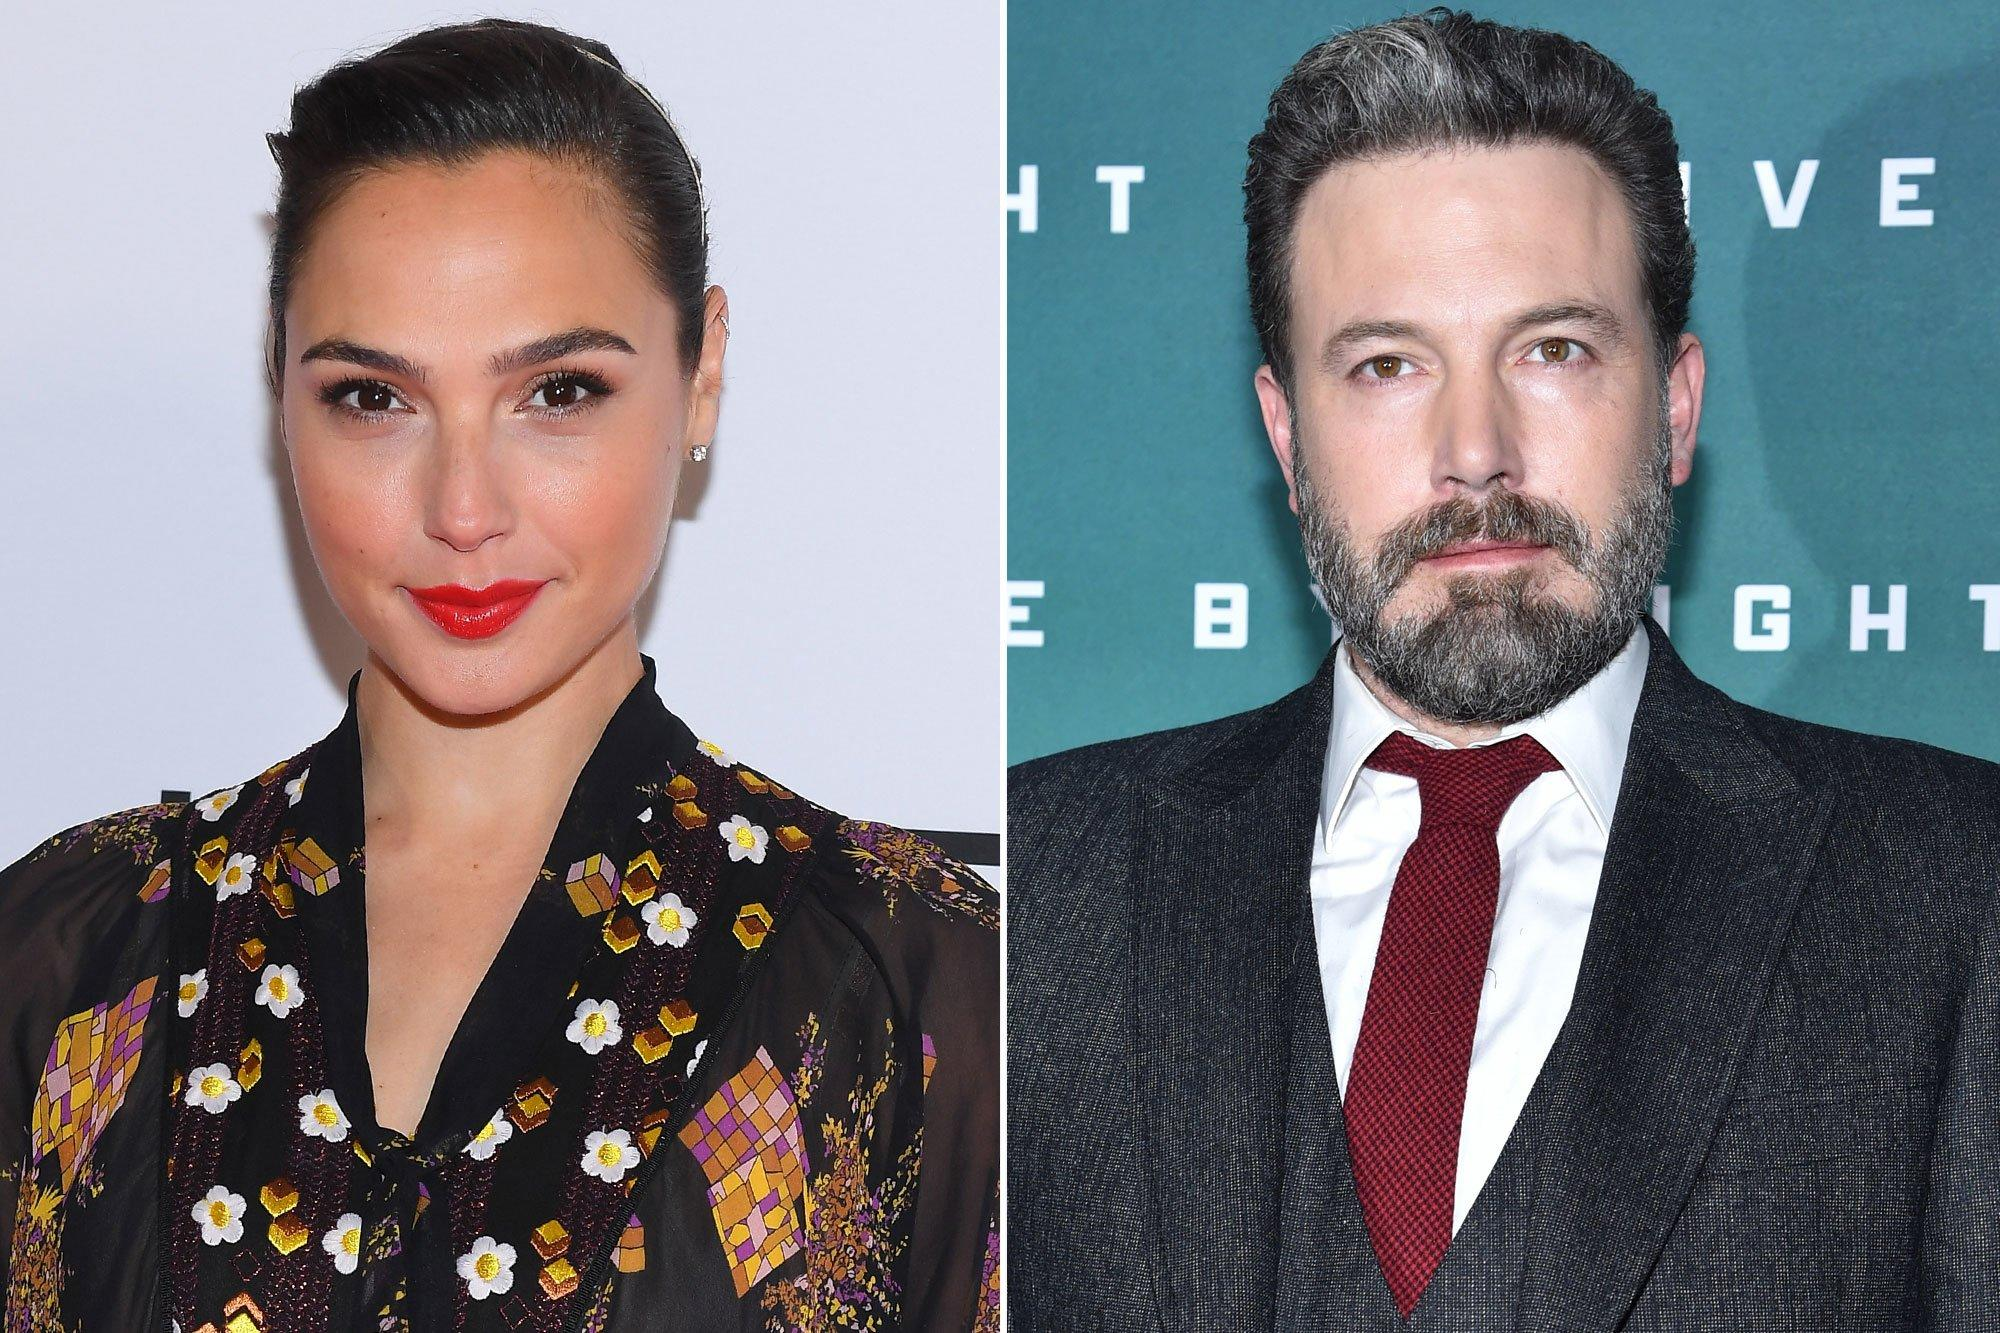 Snyders Model A >> Gal Gadot And Ben Affleck Join Calls To Release The Snyder